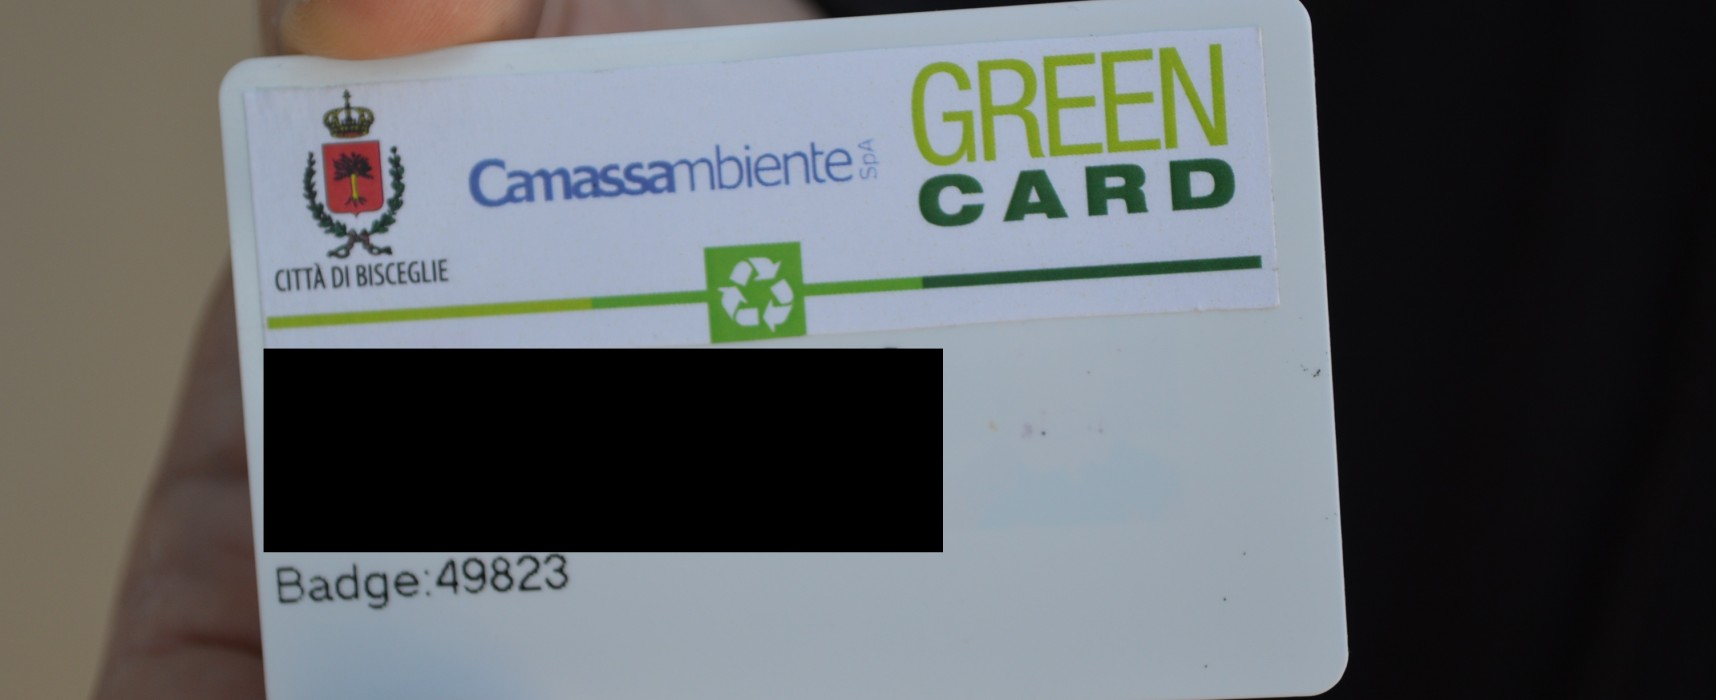 Inaugurata la Green Card, il sistema di premialità comunale per la raccolta differenziata /VIDEO